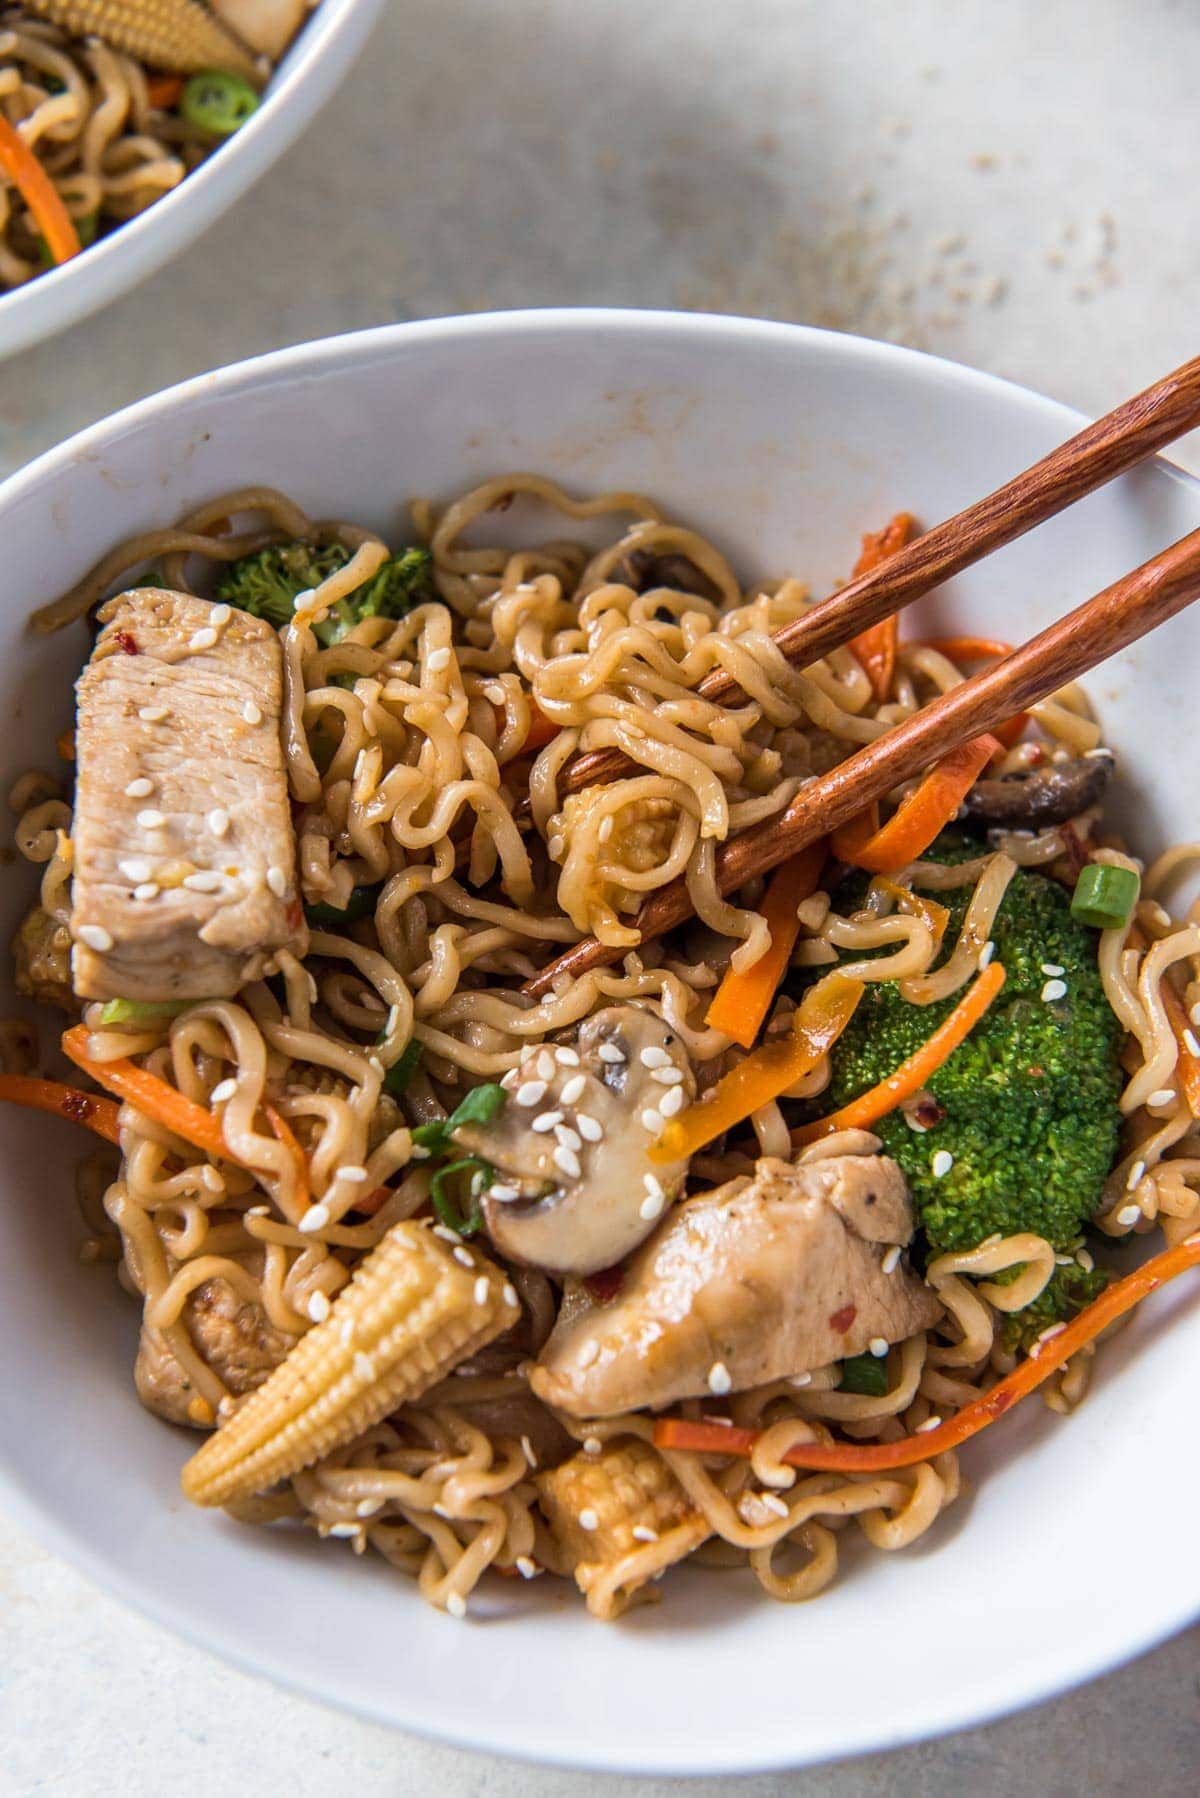 ramen noodles, chicken and vegetables in a white bowl with chopsticks